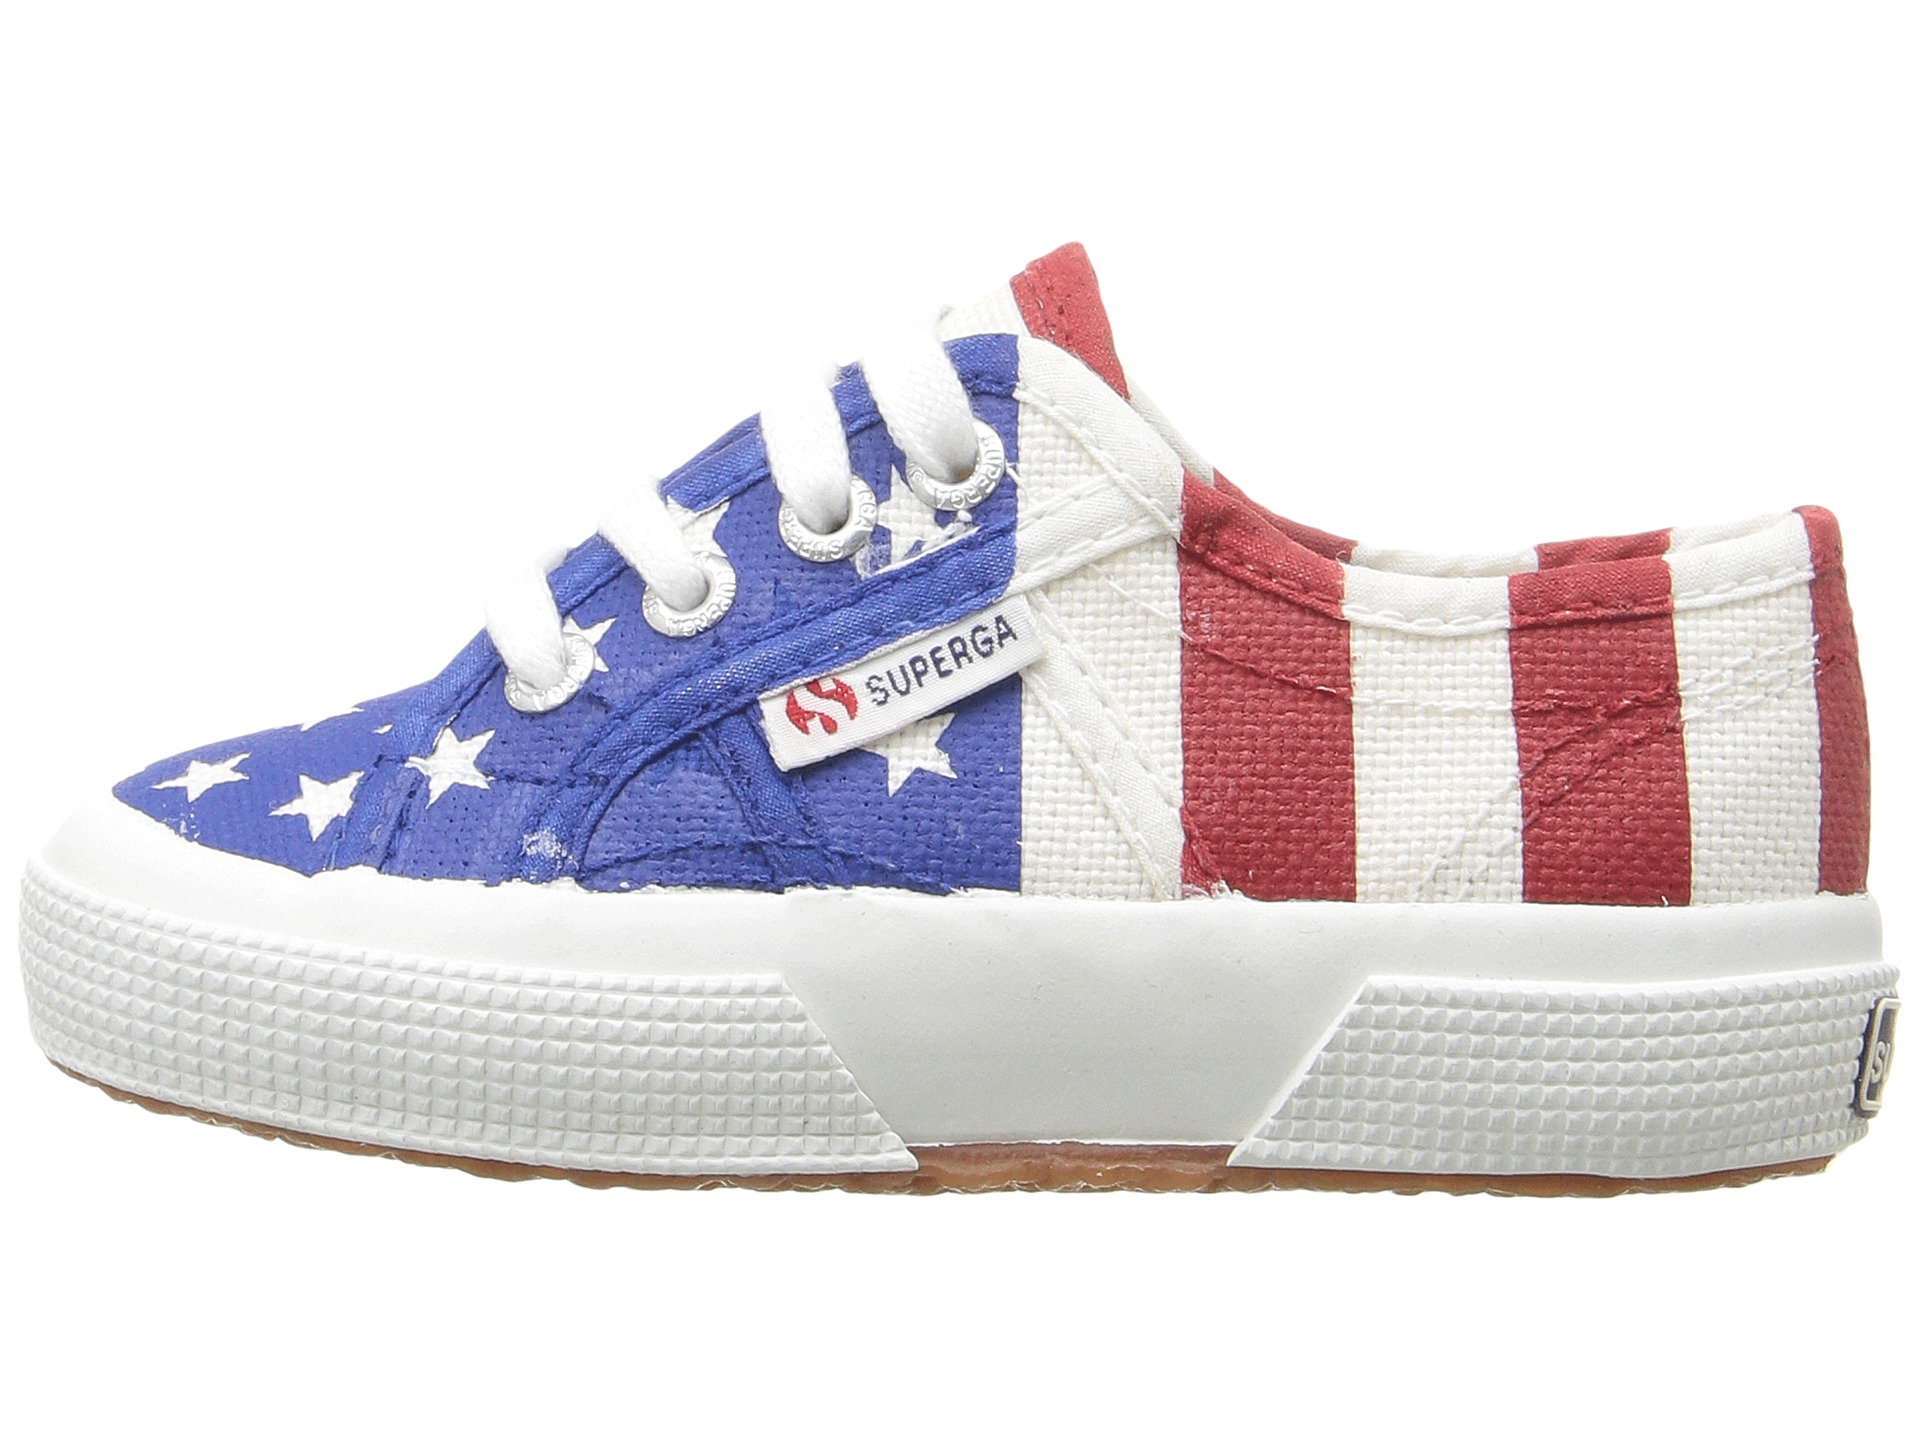 Superga Today's Deals